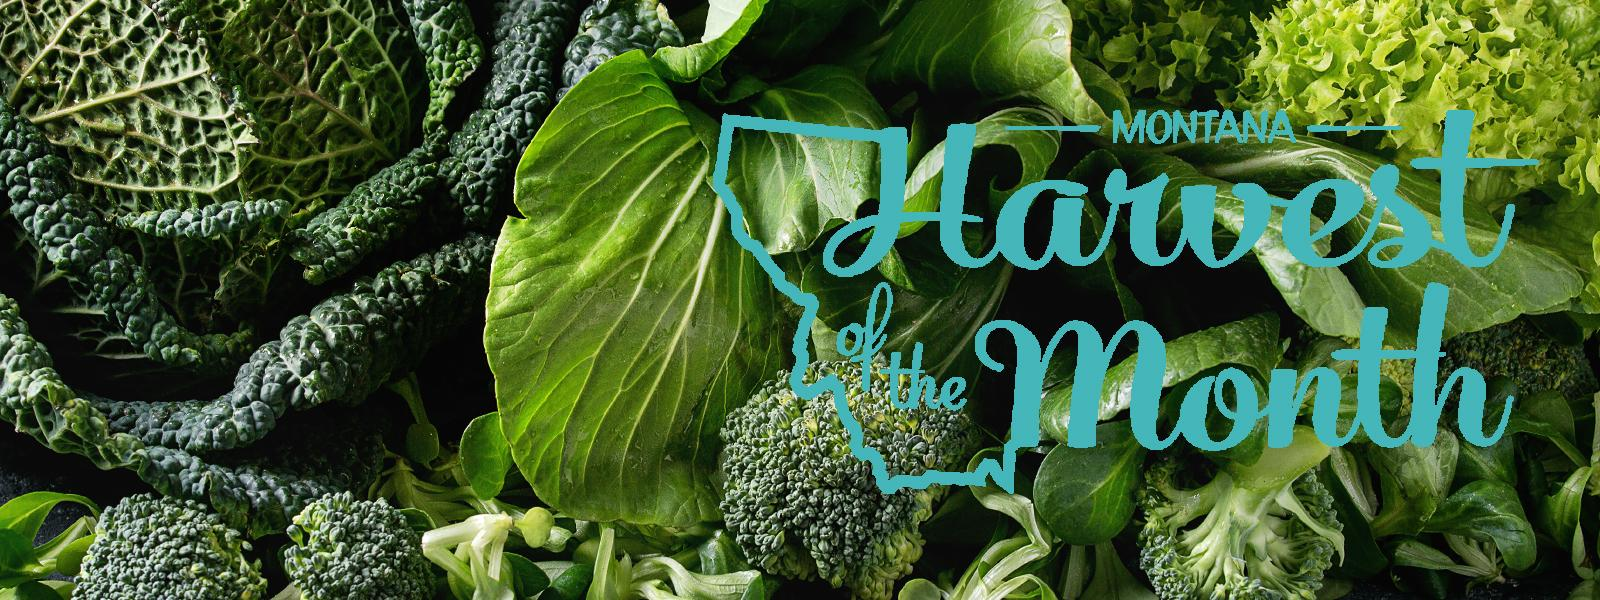 September's Montana Harvest of the Month food is Brassicas!